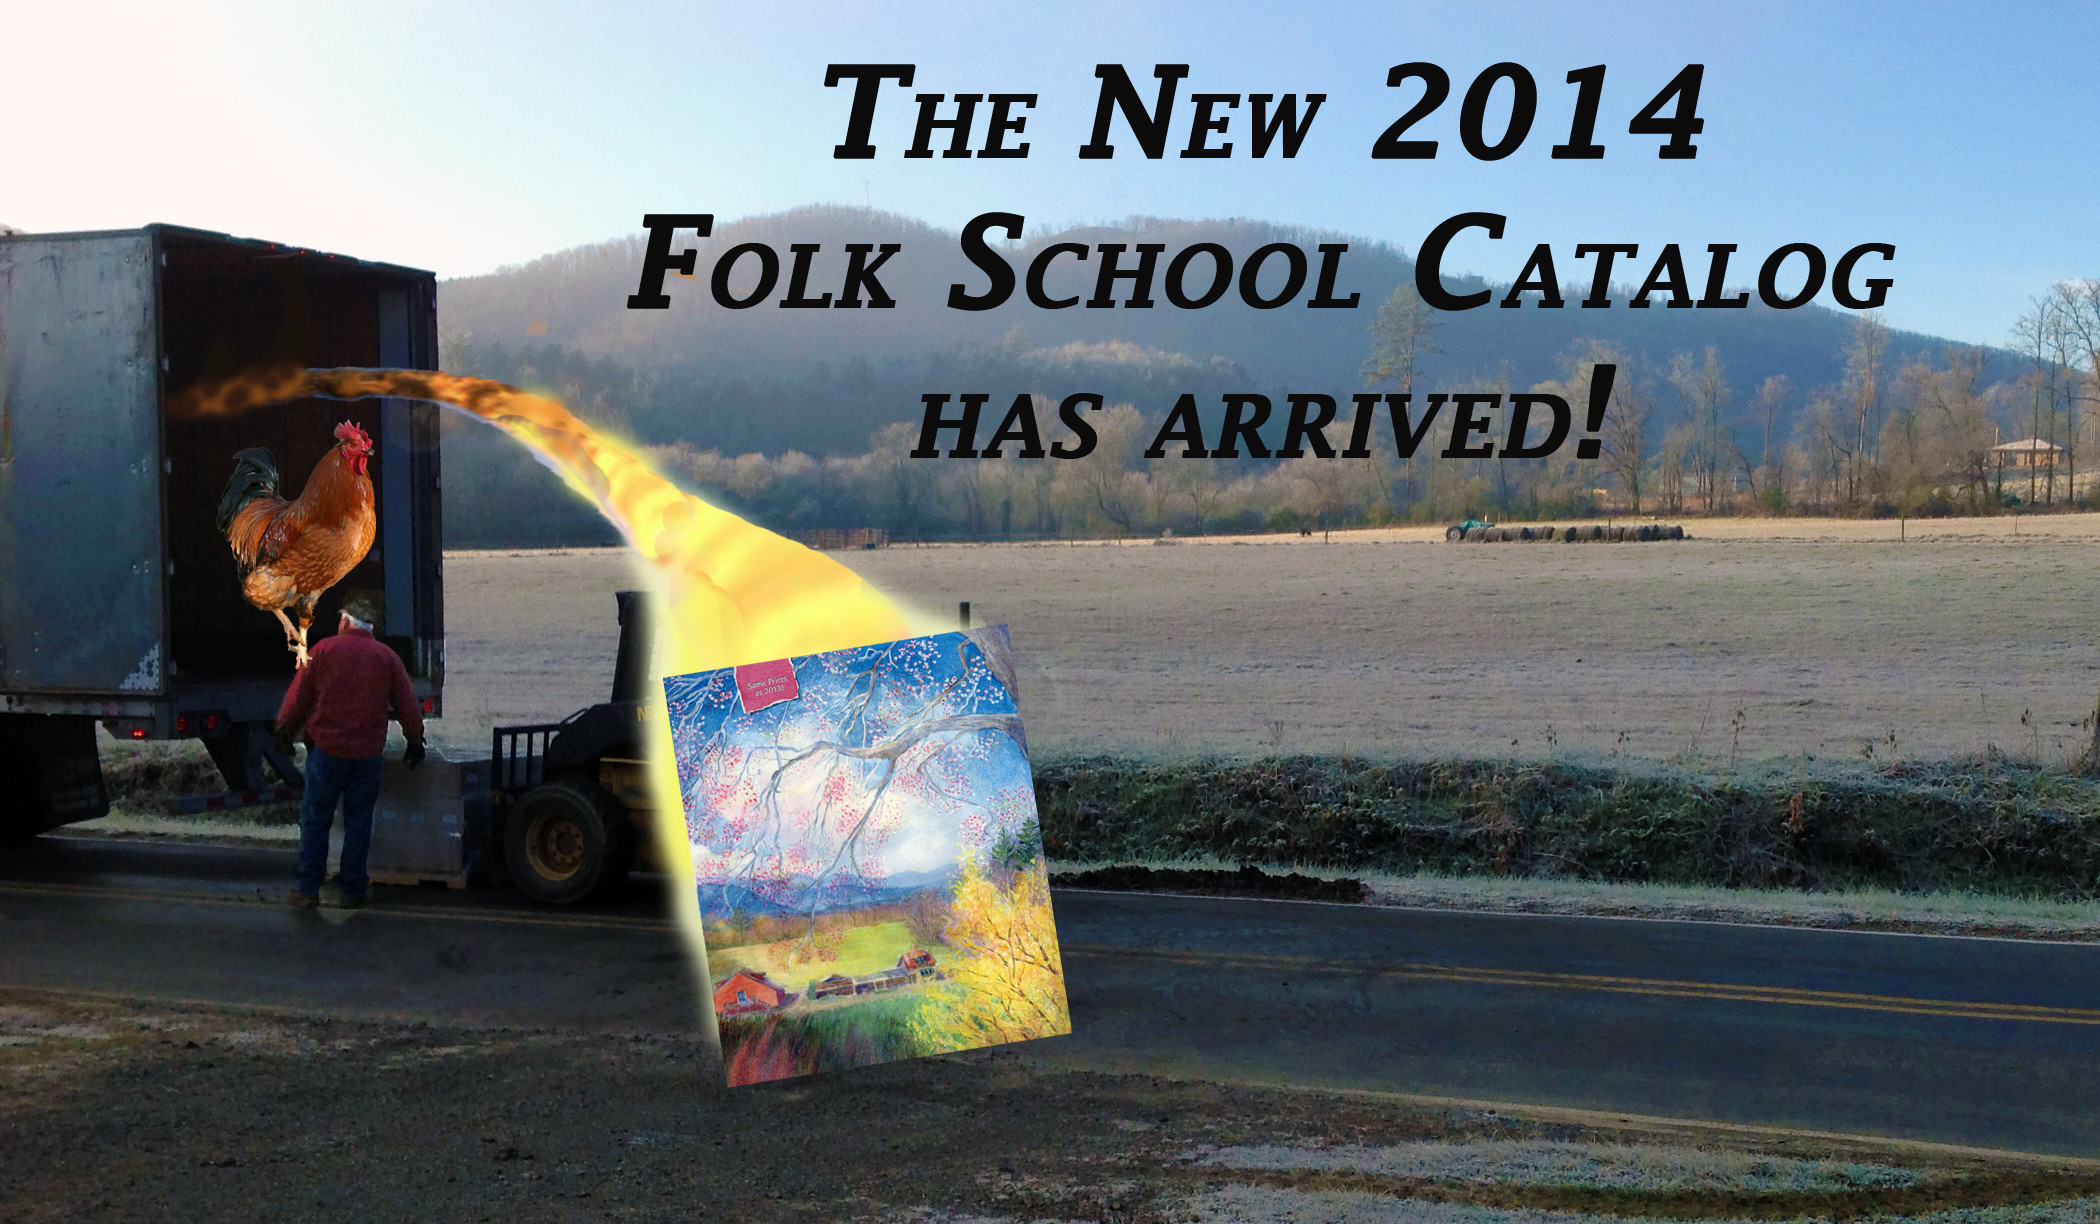 The New 2014 Catalog is Here!